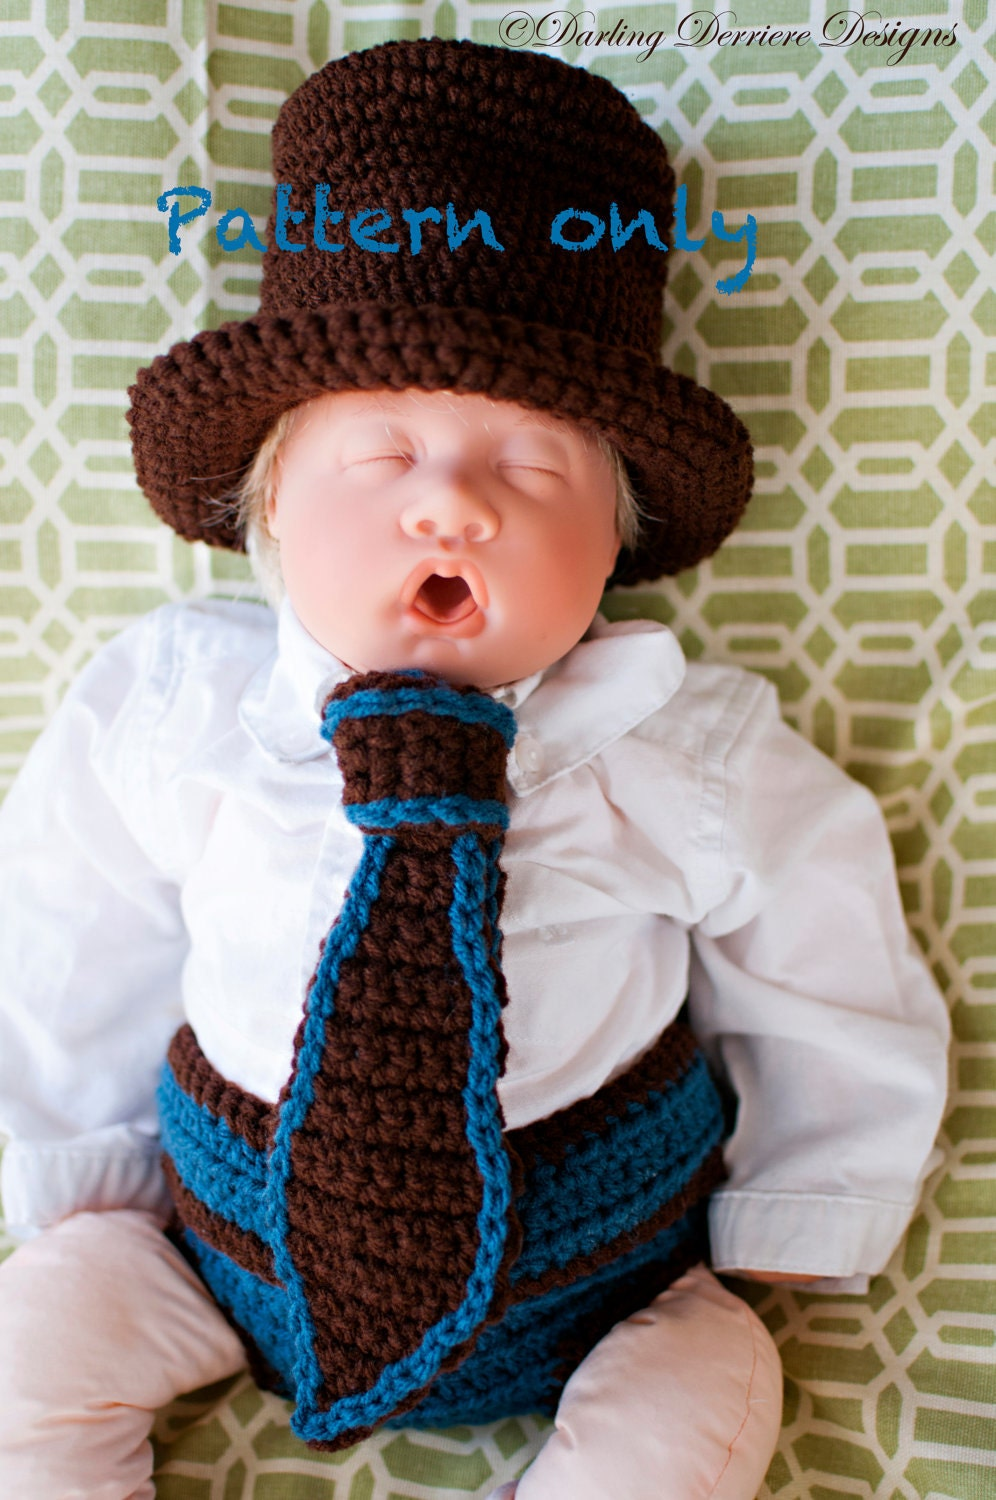 Book Cover Crochet Hat : Pdf instant download top hat tie and button diaper cover